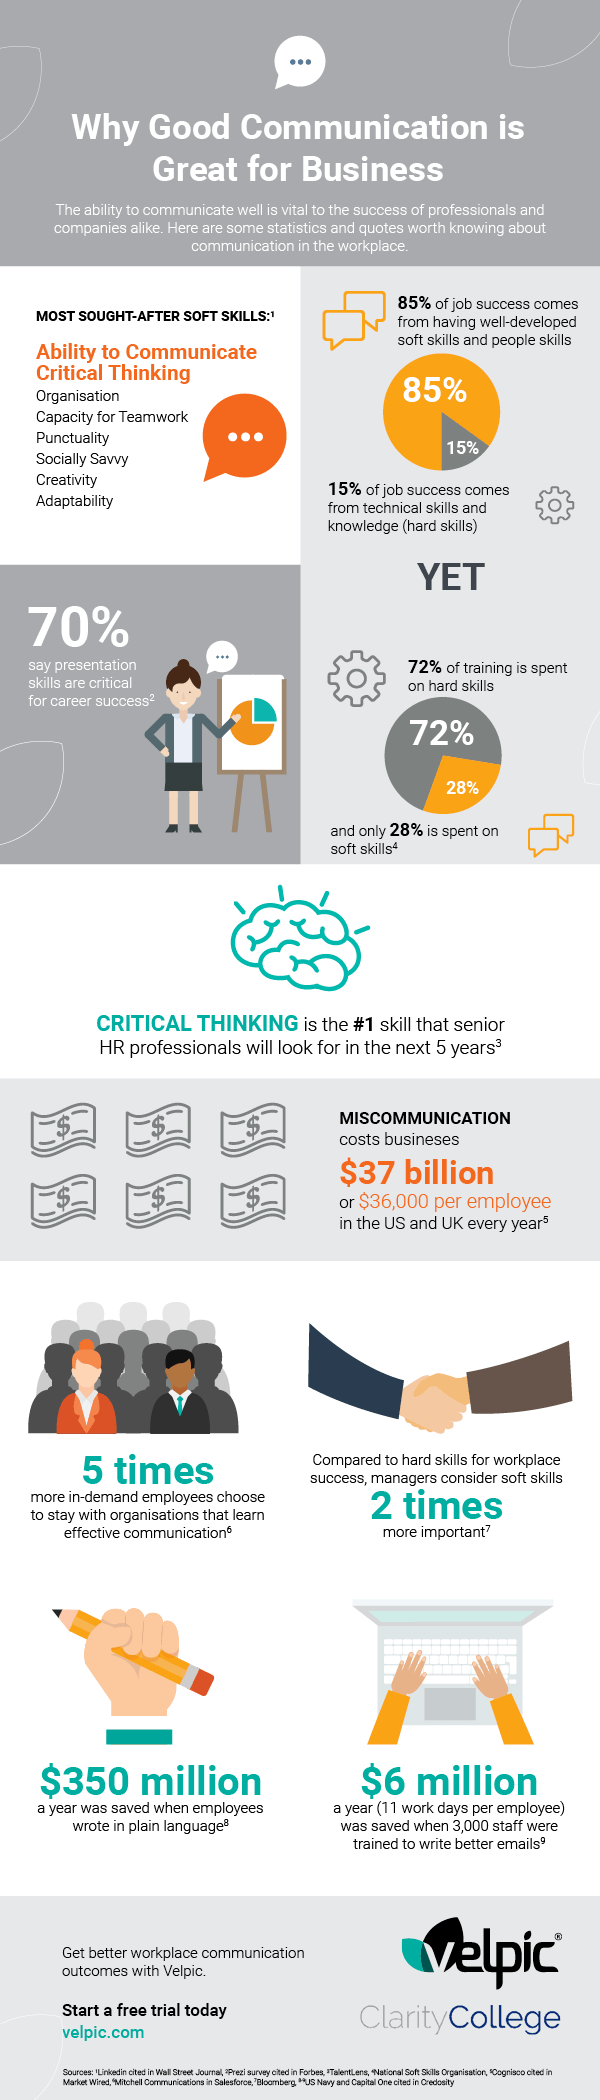 Why Good Communication Is Great For Business Infographic